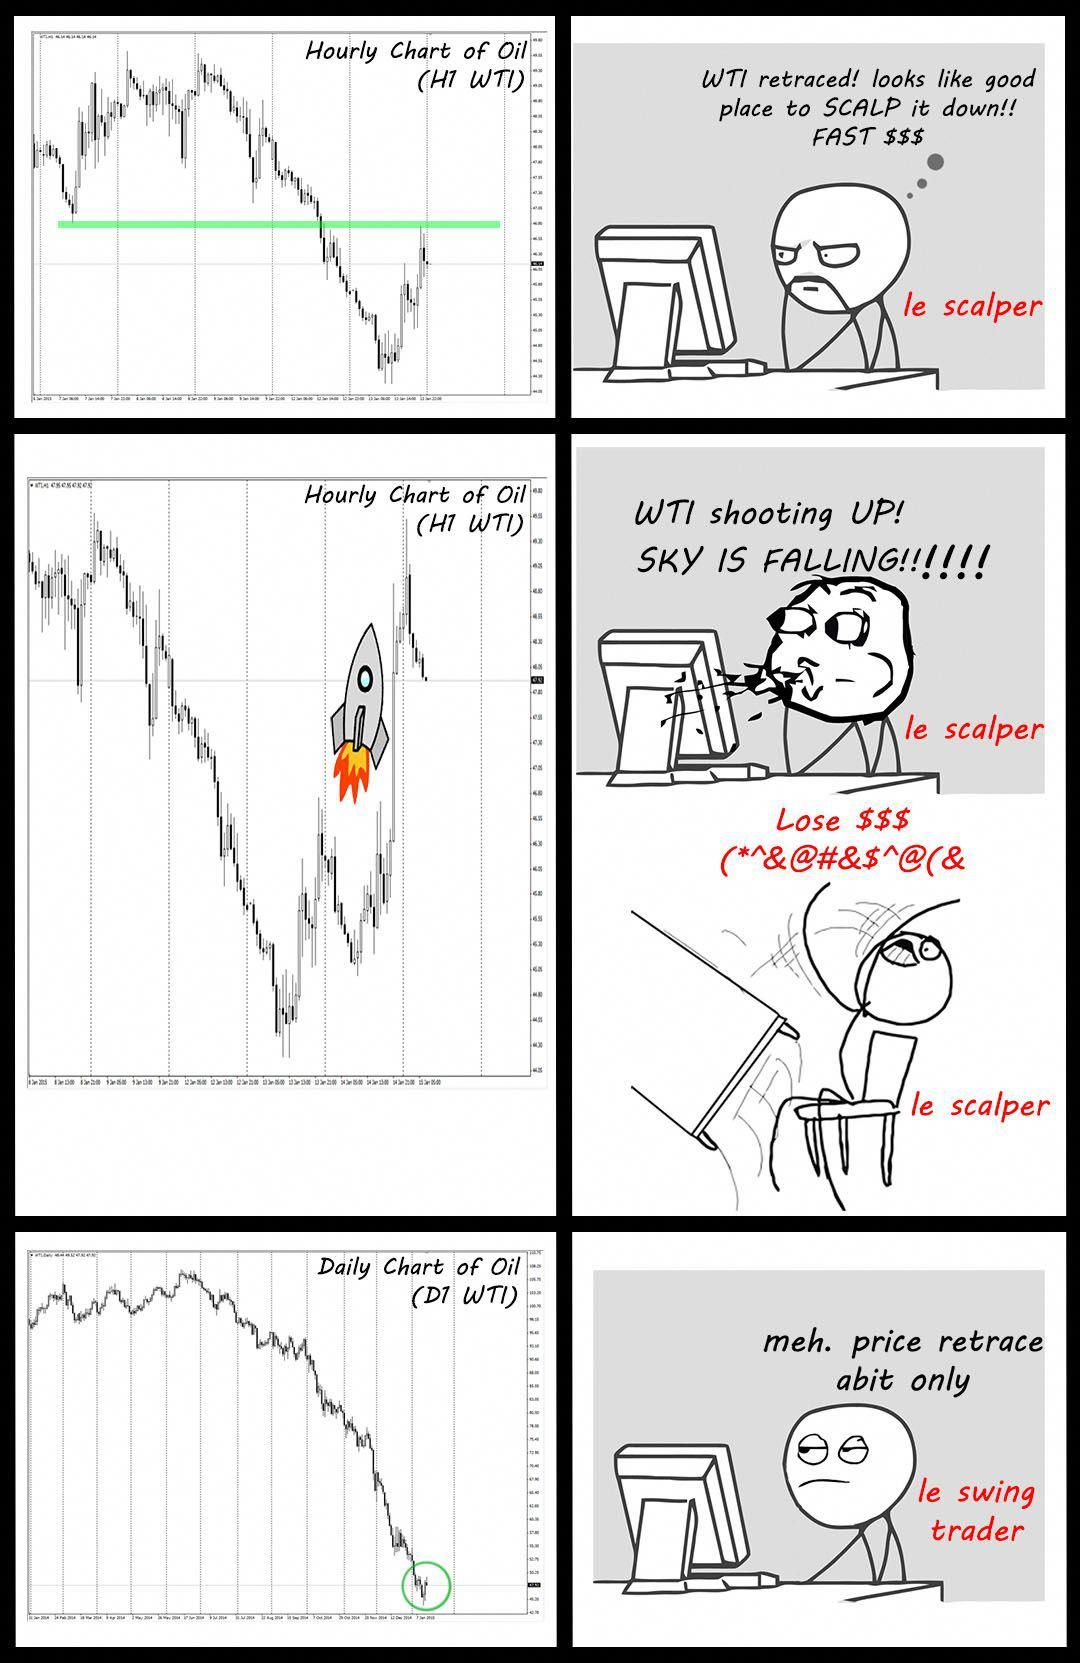 Forex Currency Scalpers Vs Swing Traders Thebasicsofforextrading Forex Trading Trading Charts Day Trader